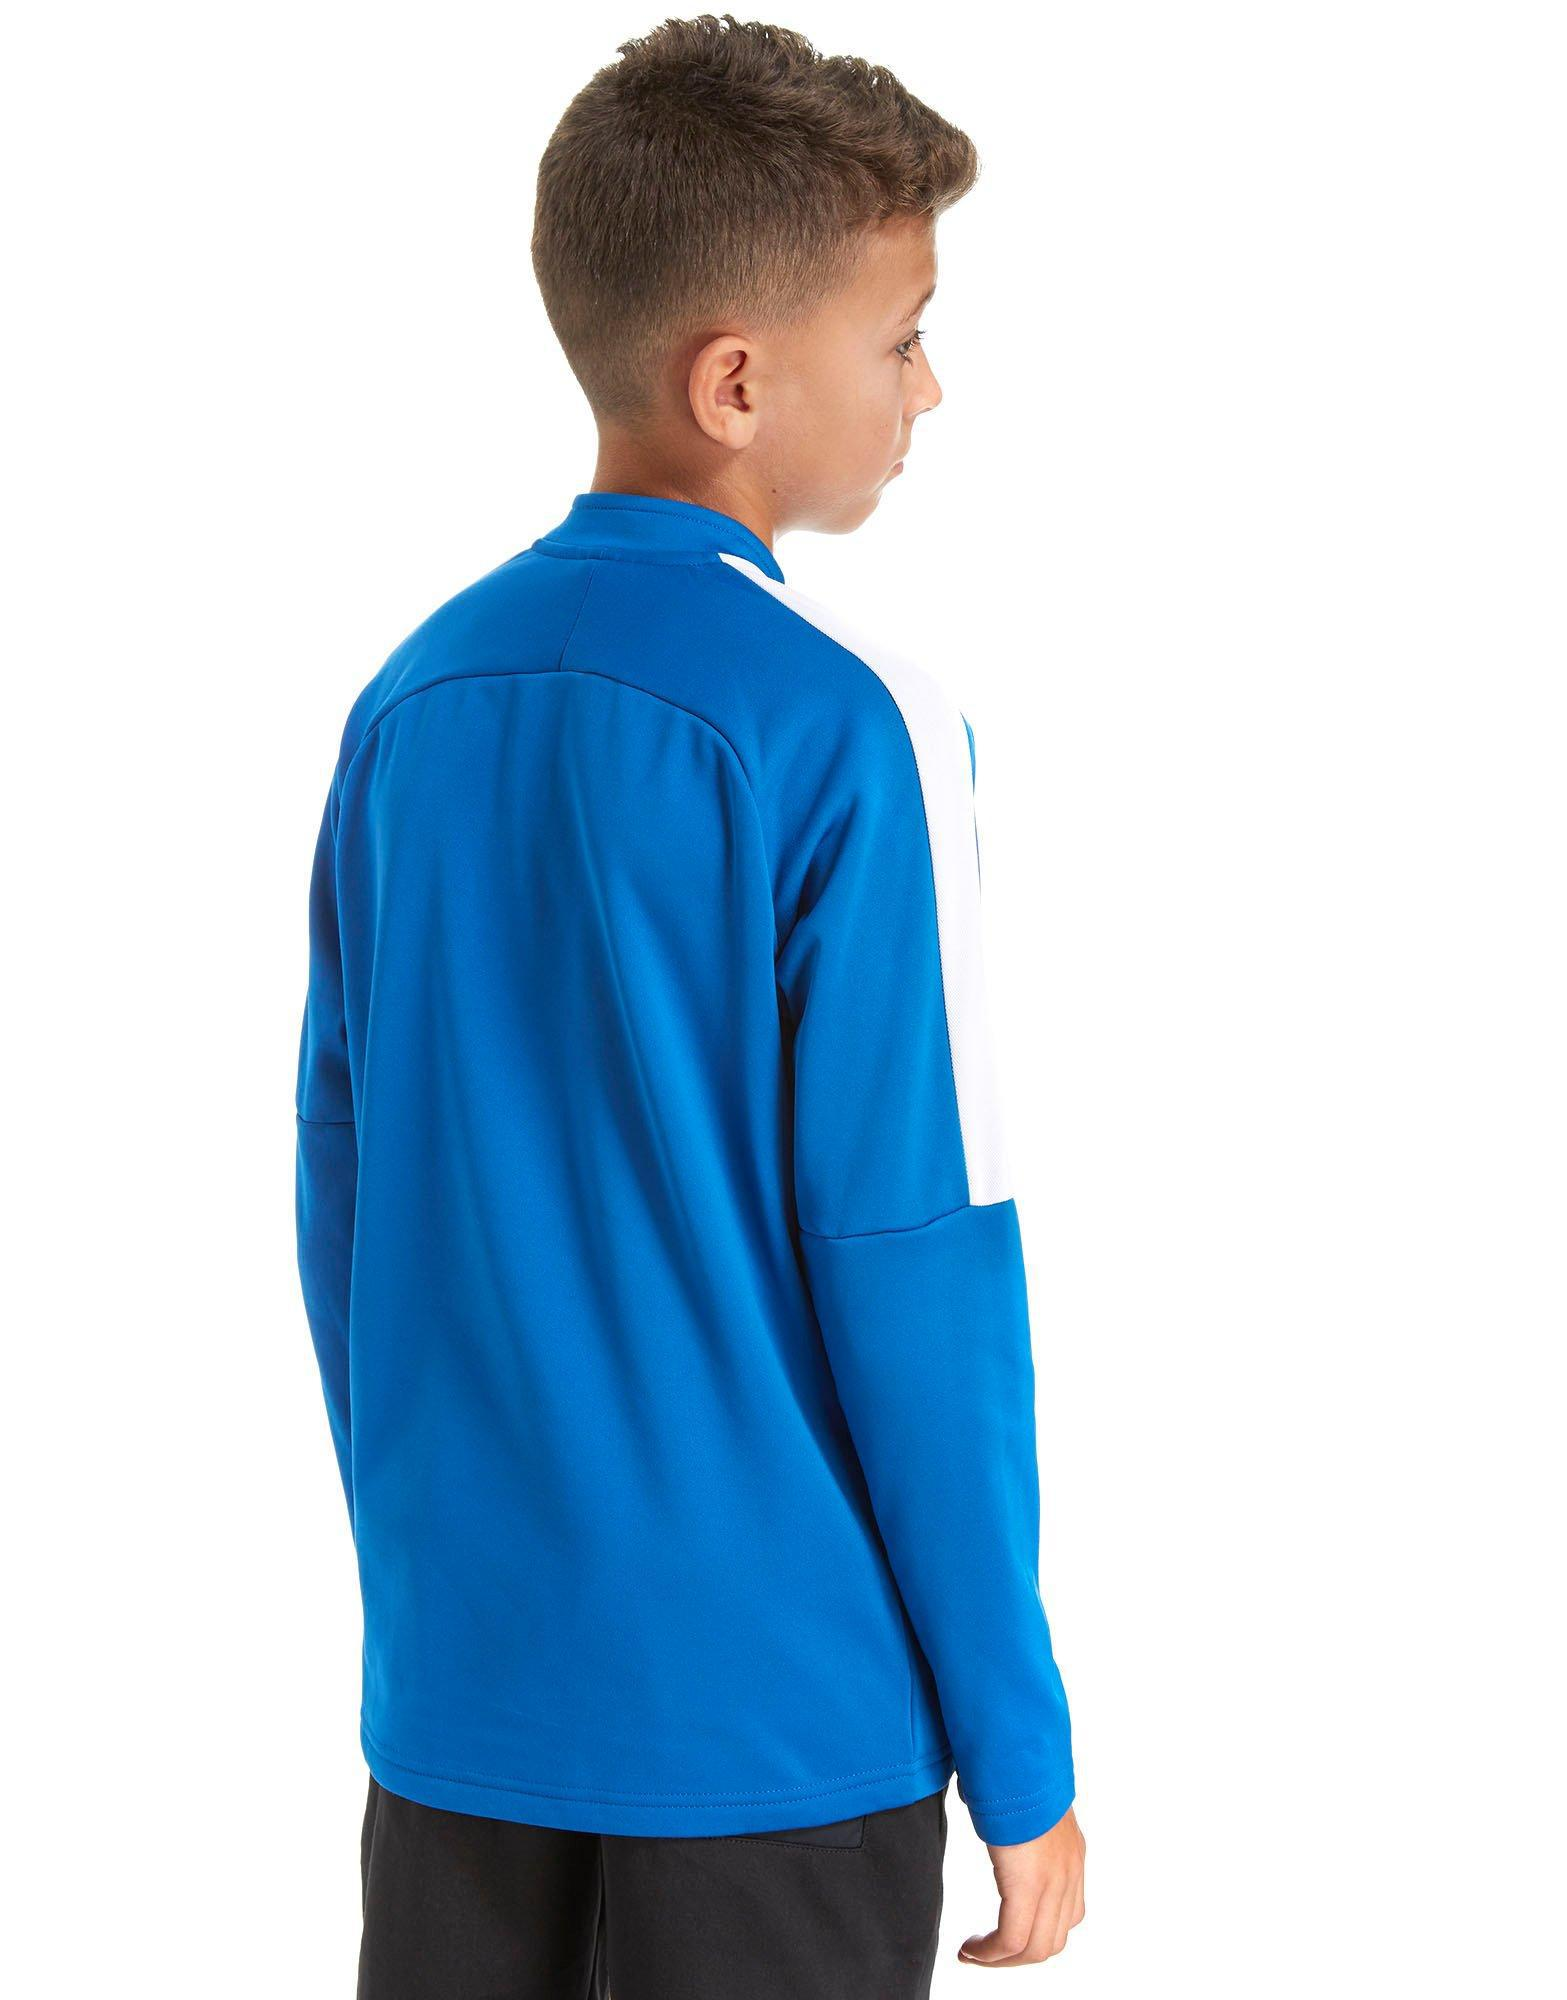 Nike Synthetic Academy 1/4 Zip Jacket Junior in Blue/White (Blue) for Men